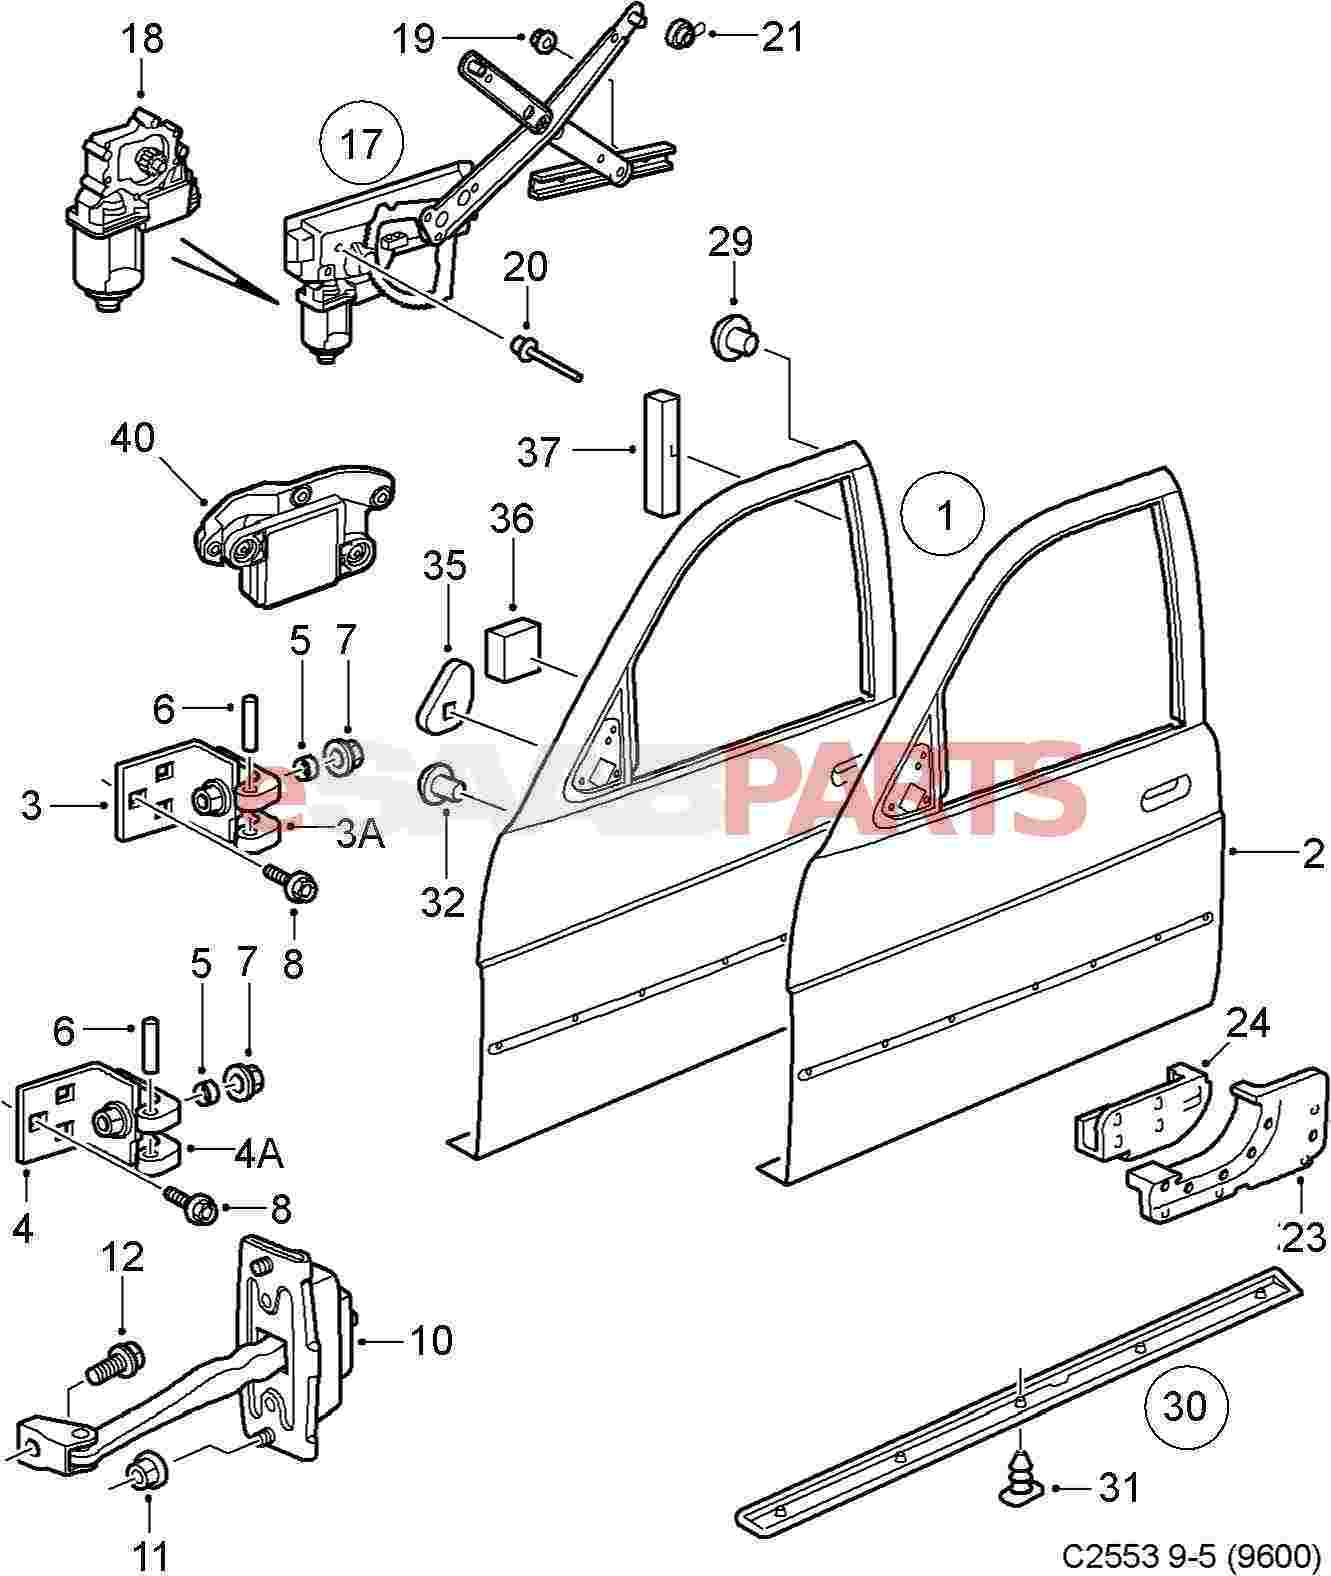 esaabparts com saab 9 5 9600 u003e car body external parts u003e door rh esaabparts com Saab 900 Engine Diagram Saab 900 Engine Diagram